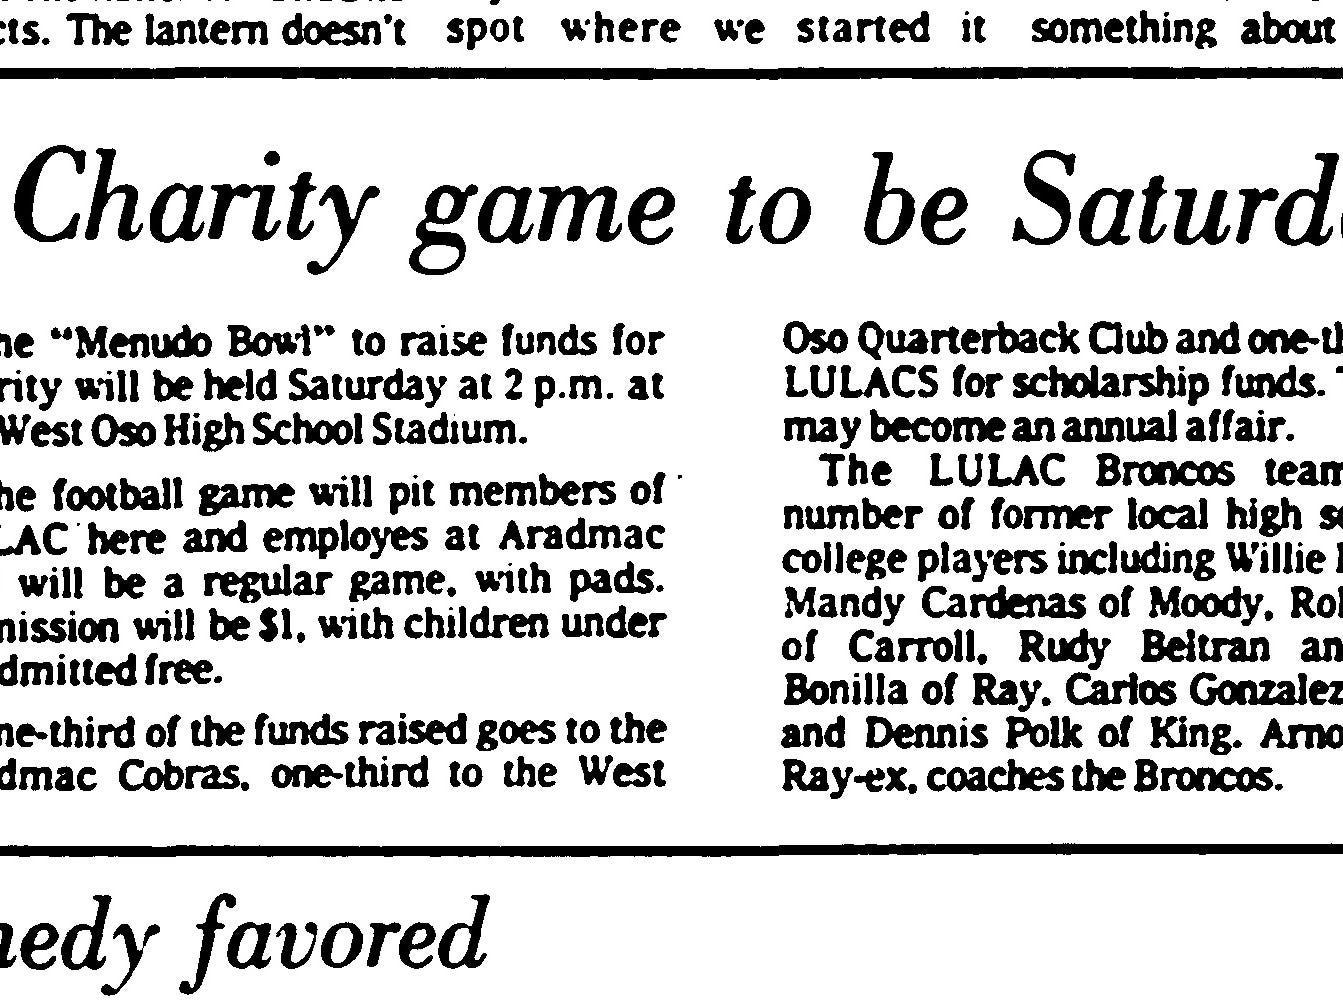 The first Menudo Bowl, previewed in this article from the Corpus Christi Caller-Times, was held in January 1975.